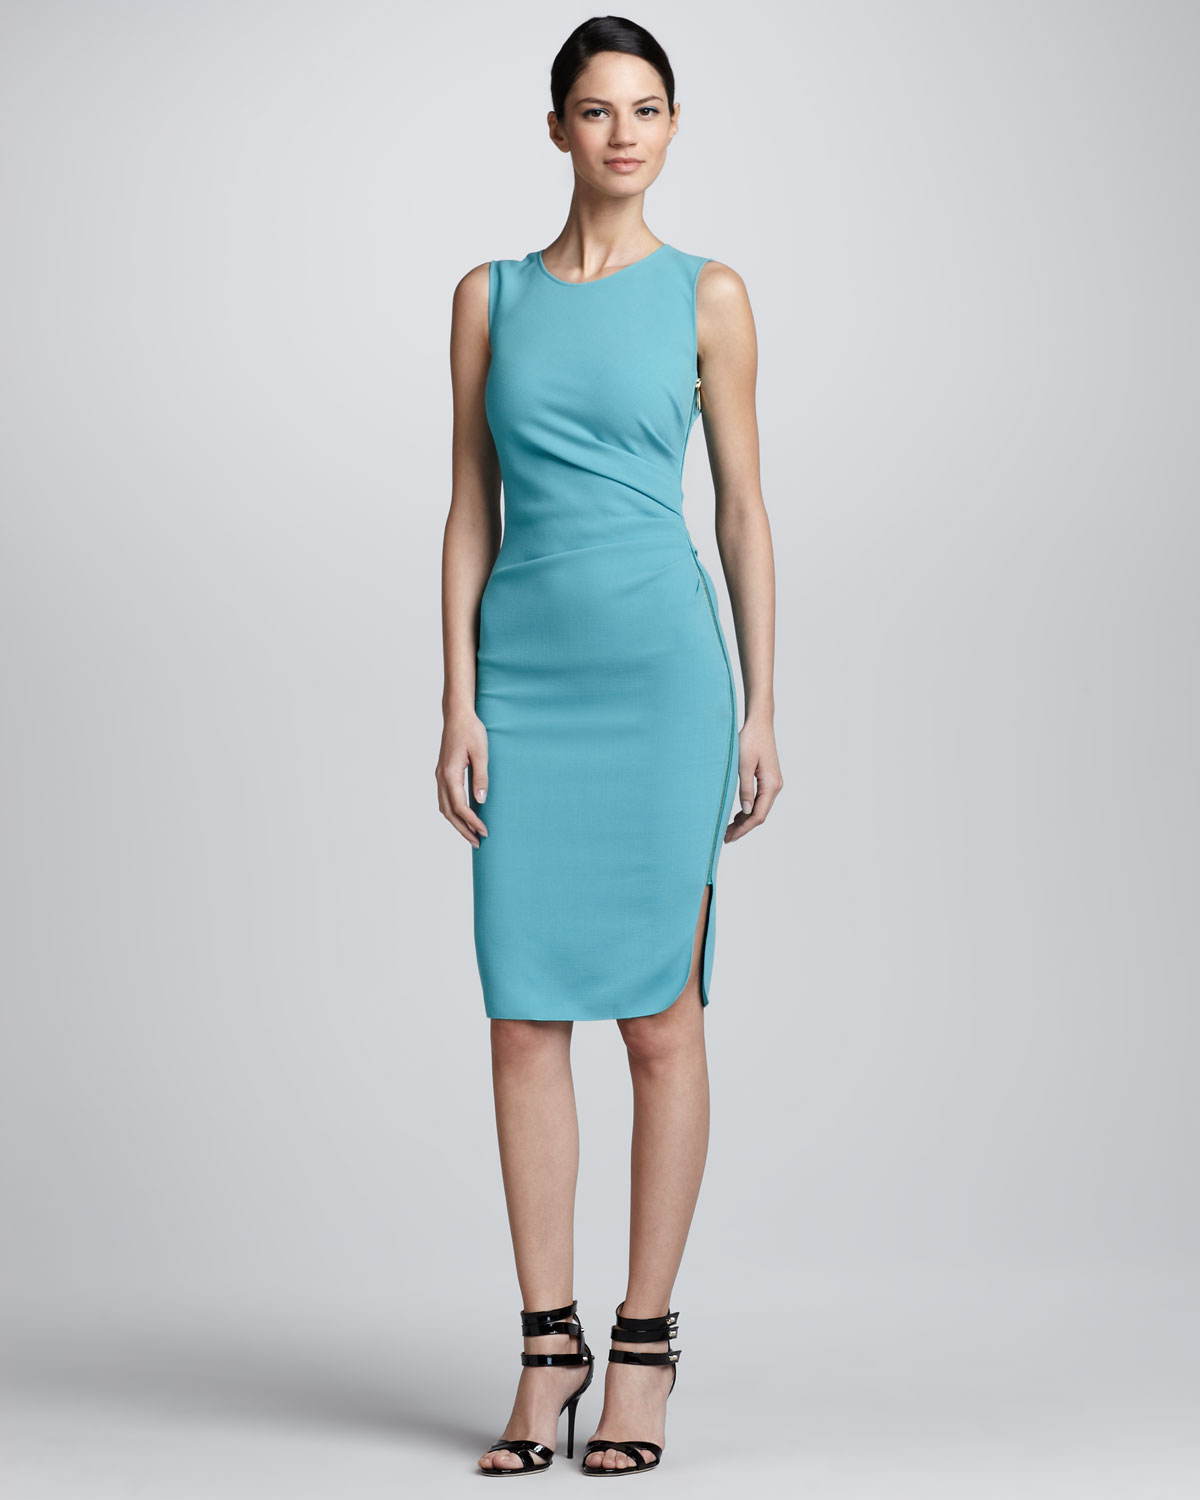 Emilio pucci ruched side zip crepe dress in blue lyst gallery previously sold at neiman marcus ombrellifo Choice Image